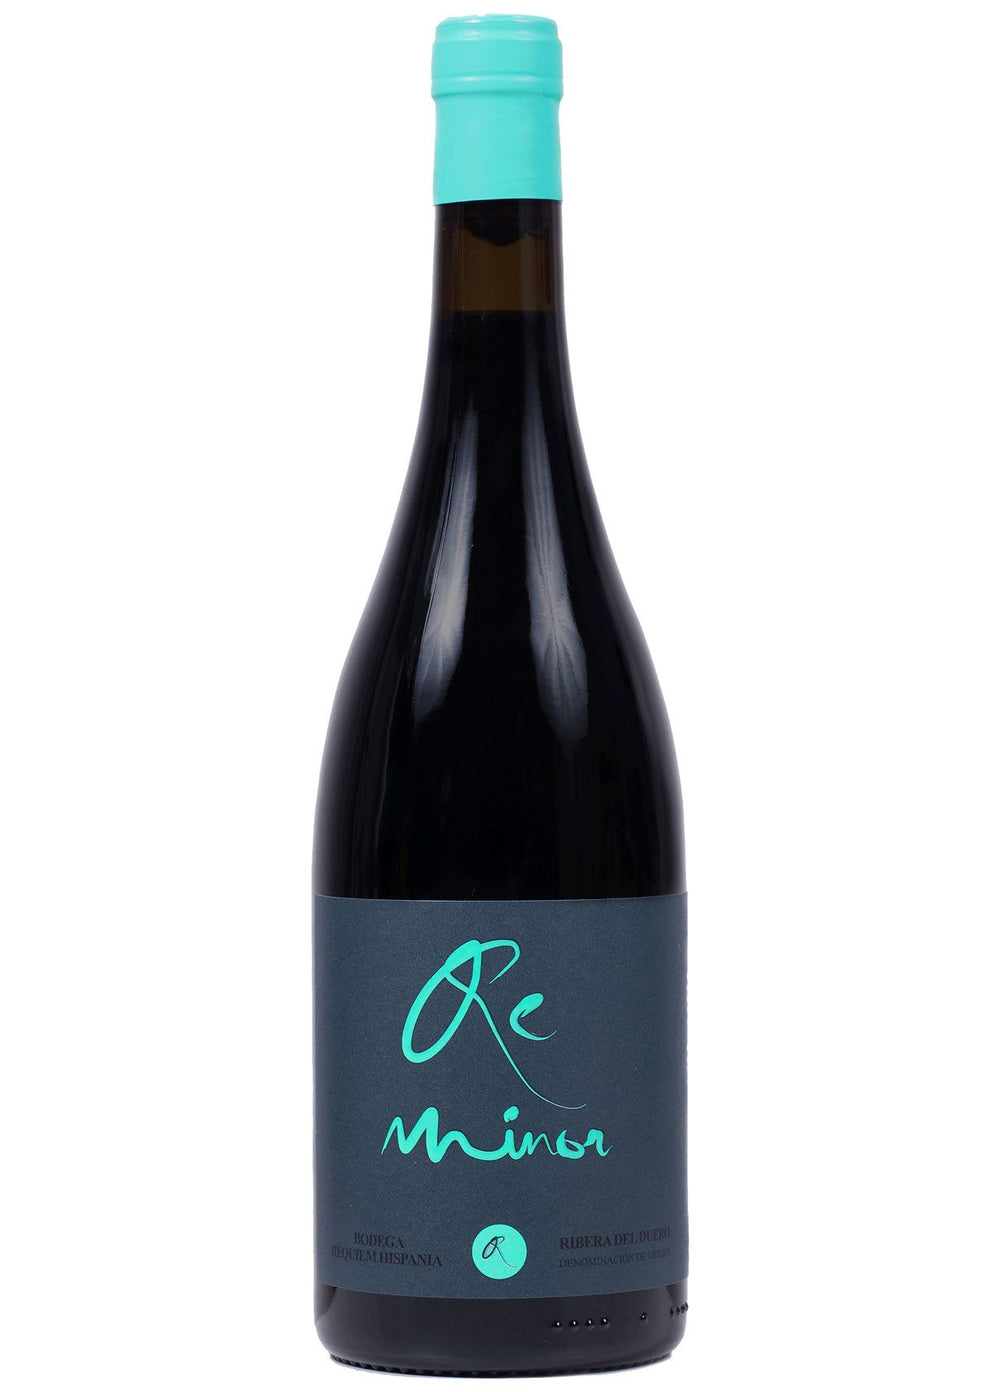 Bodegas Requiem - Ribera del Duero Re Minor 2015